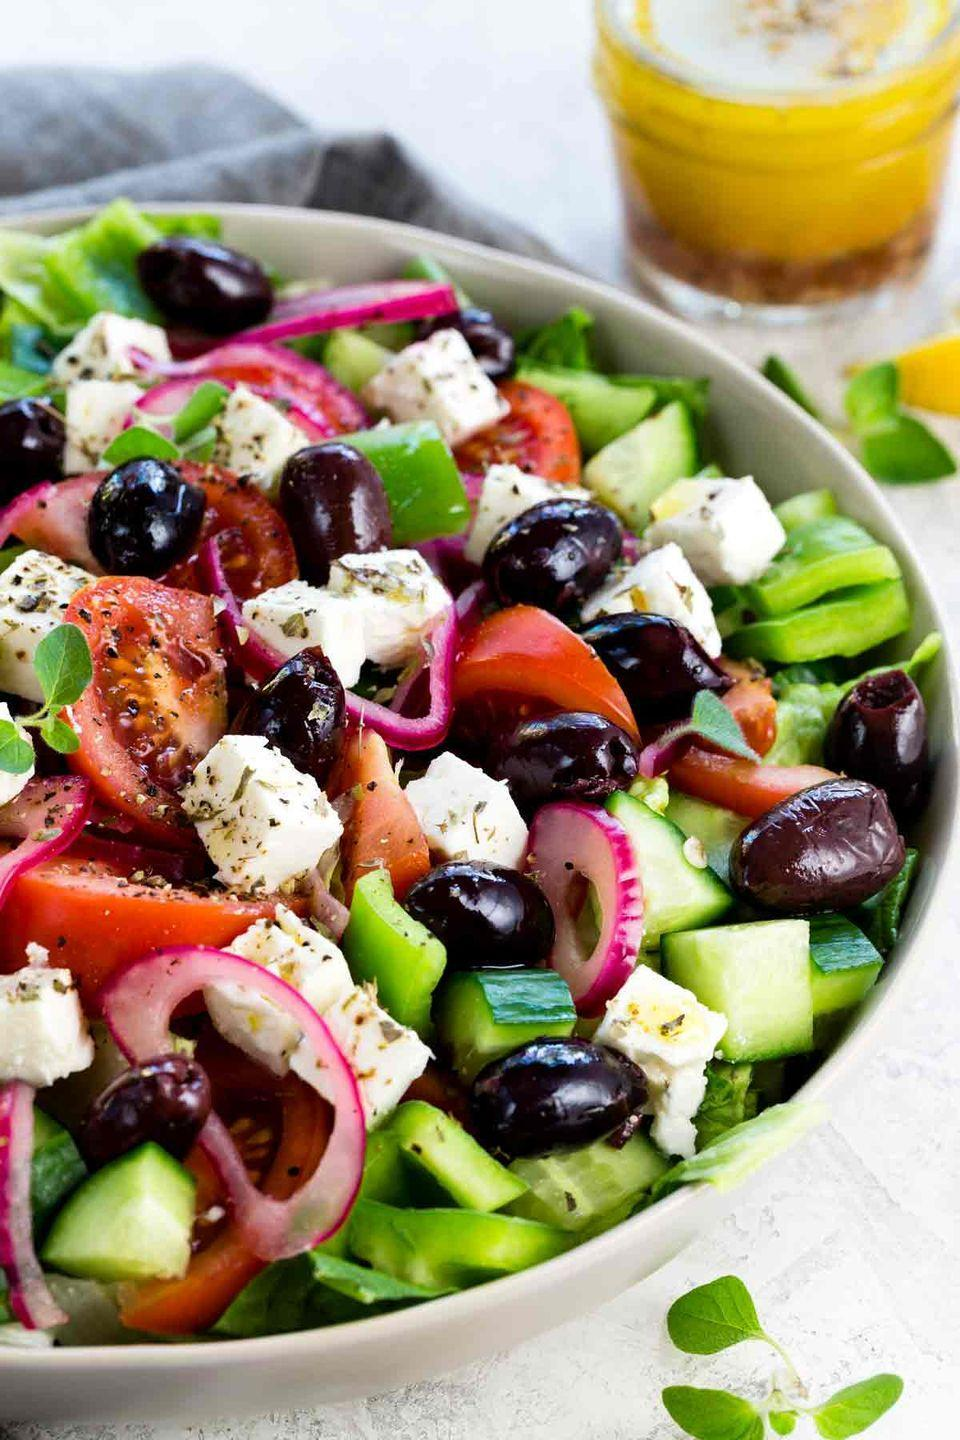 """<p>For a side that stands up to scorching heat better than mayo-based salads, try a super fresh mixture of romaine and Greek favorites, like cucumbers, kalamata olives, tomatoes, red onions, and feta. </p><p><a href=""""https://www.jessicagavin.com/greek-salad/"""" rel=""""nofollow noopener"""" target=""""_blank"""" data-ylk=""""slk:Get the recipe."""" class=""""link rapid-noclick-resp"""">Get the recipe.</a></p>"""